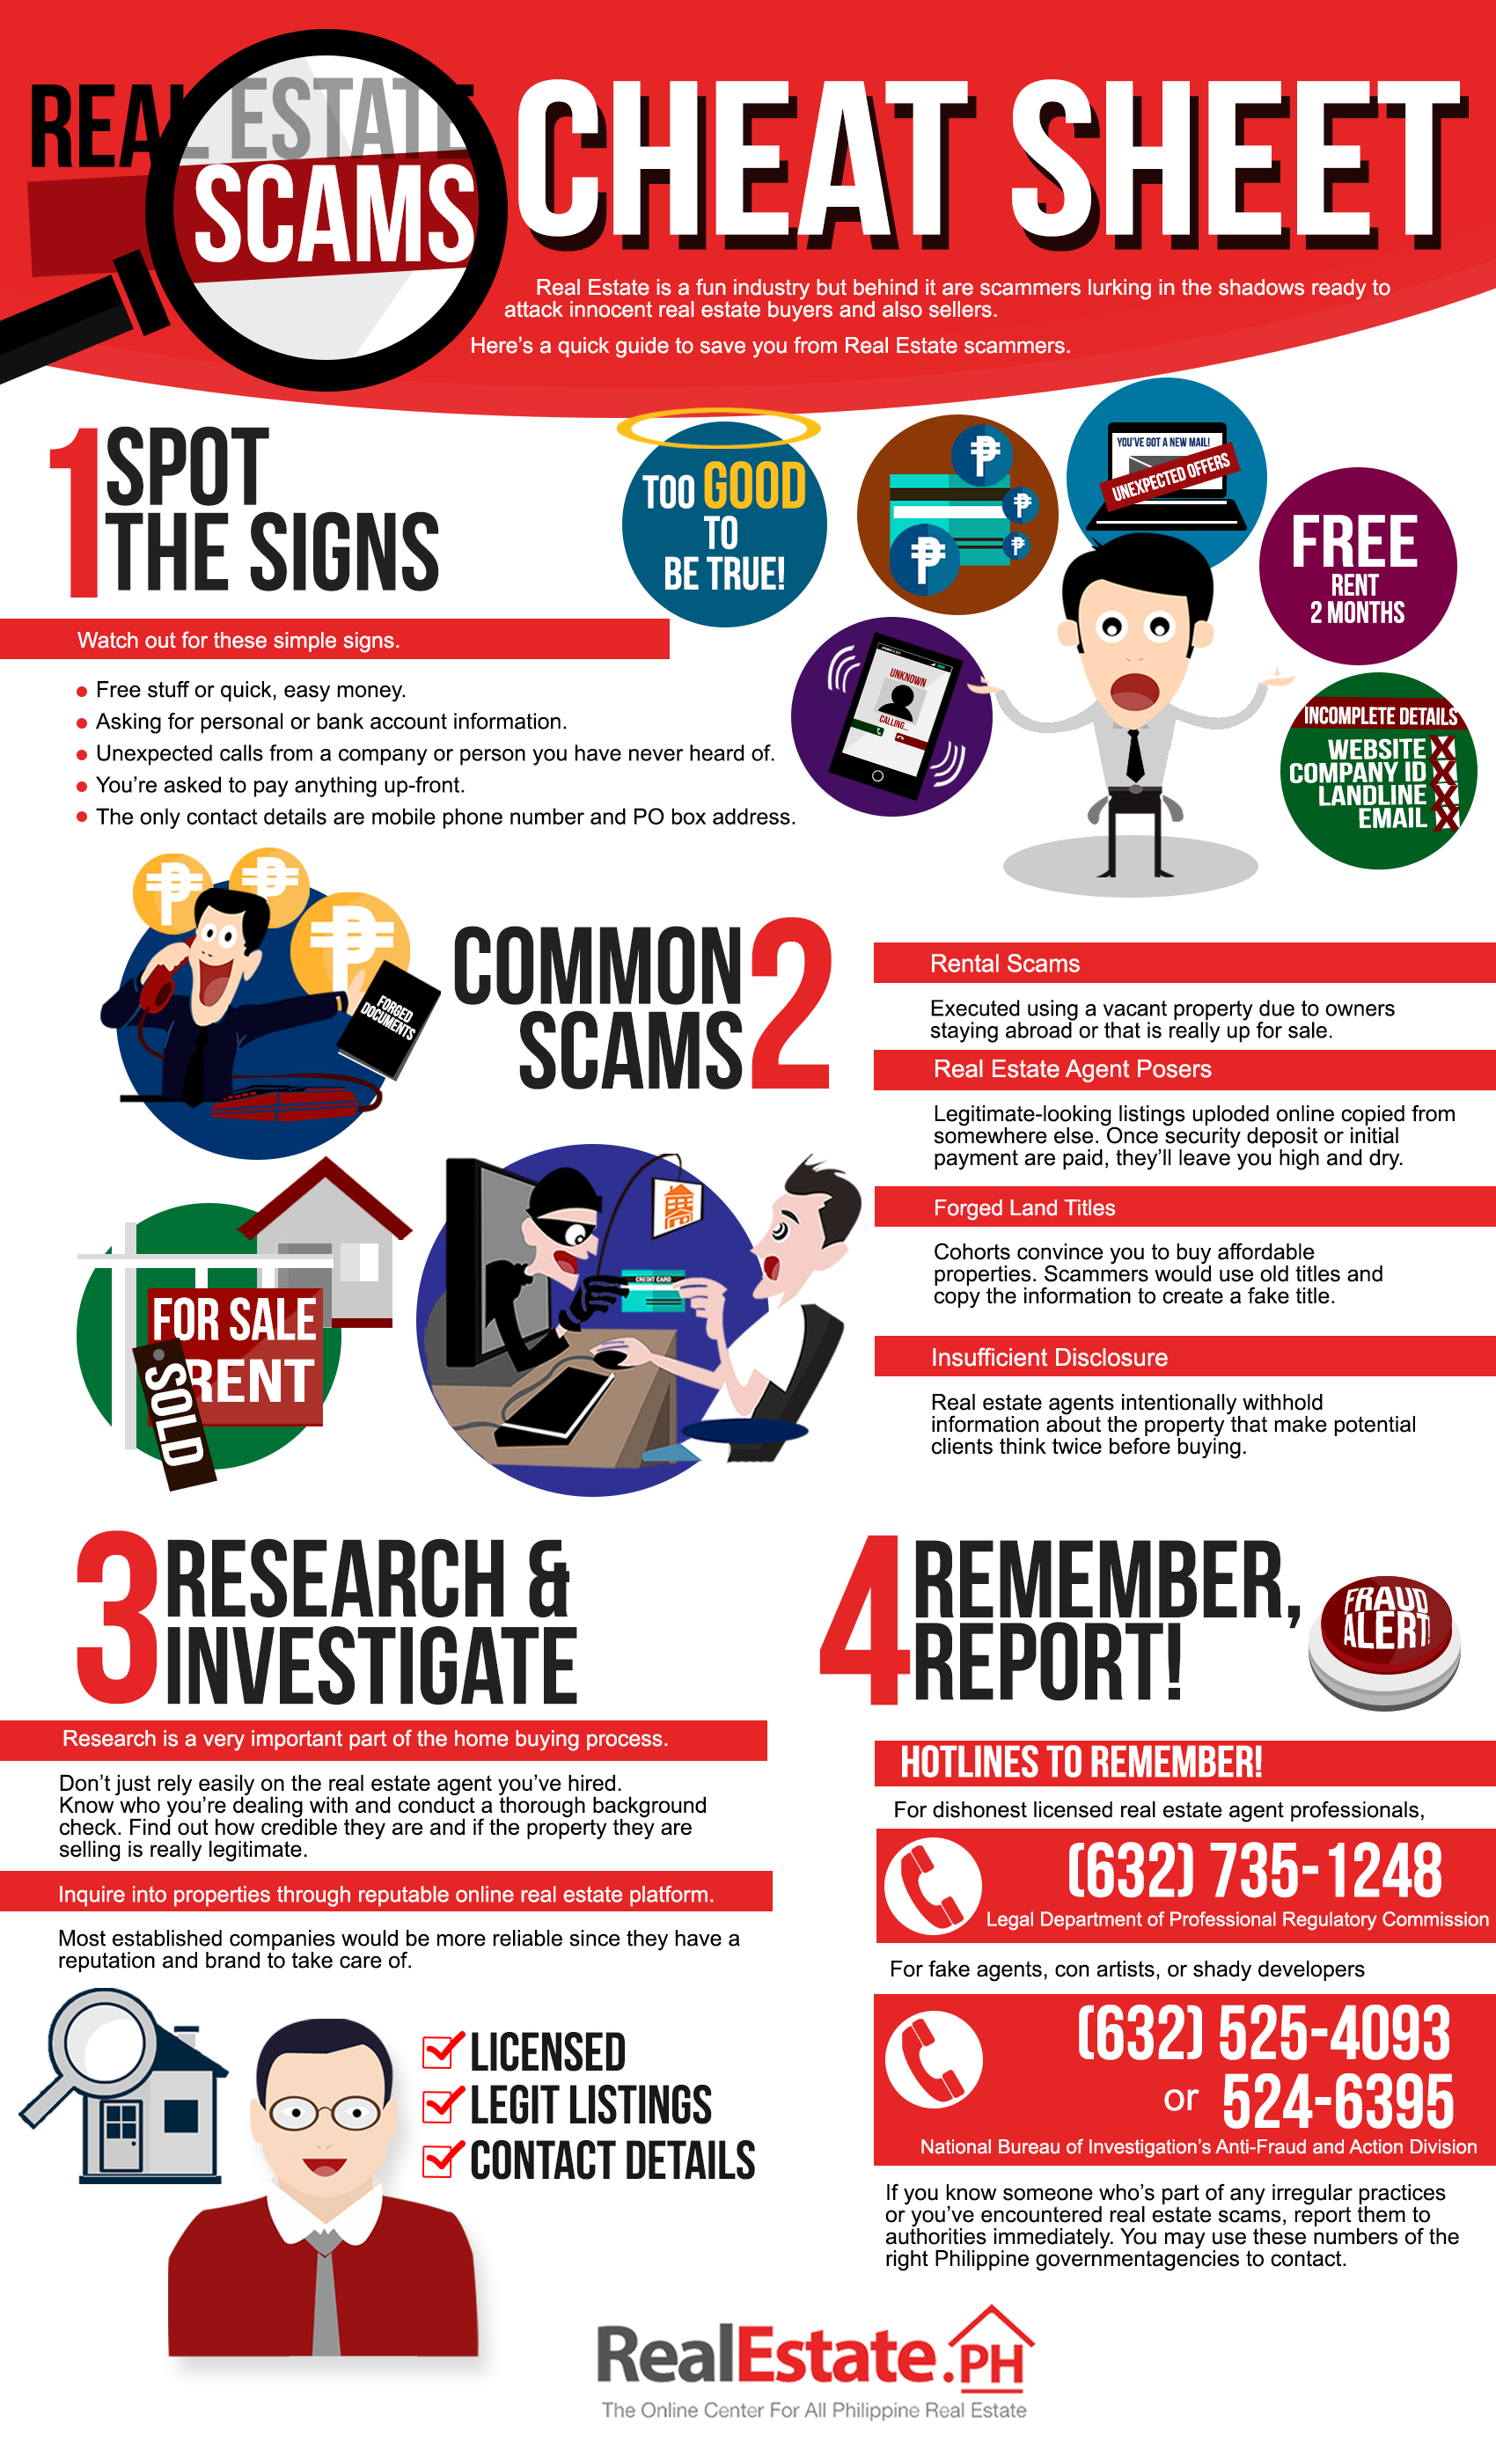 Real Estate Scams Cheat Sheet [Infographic]